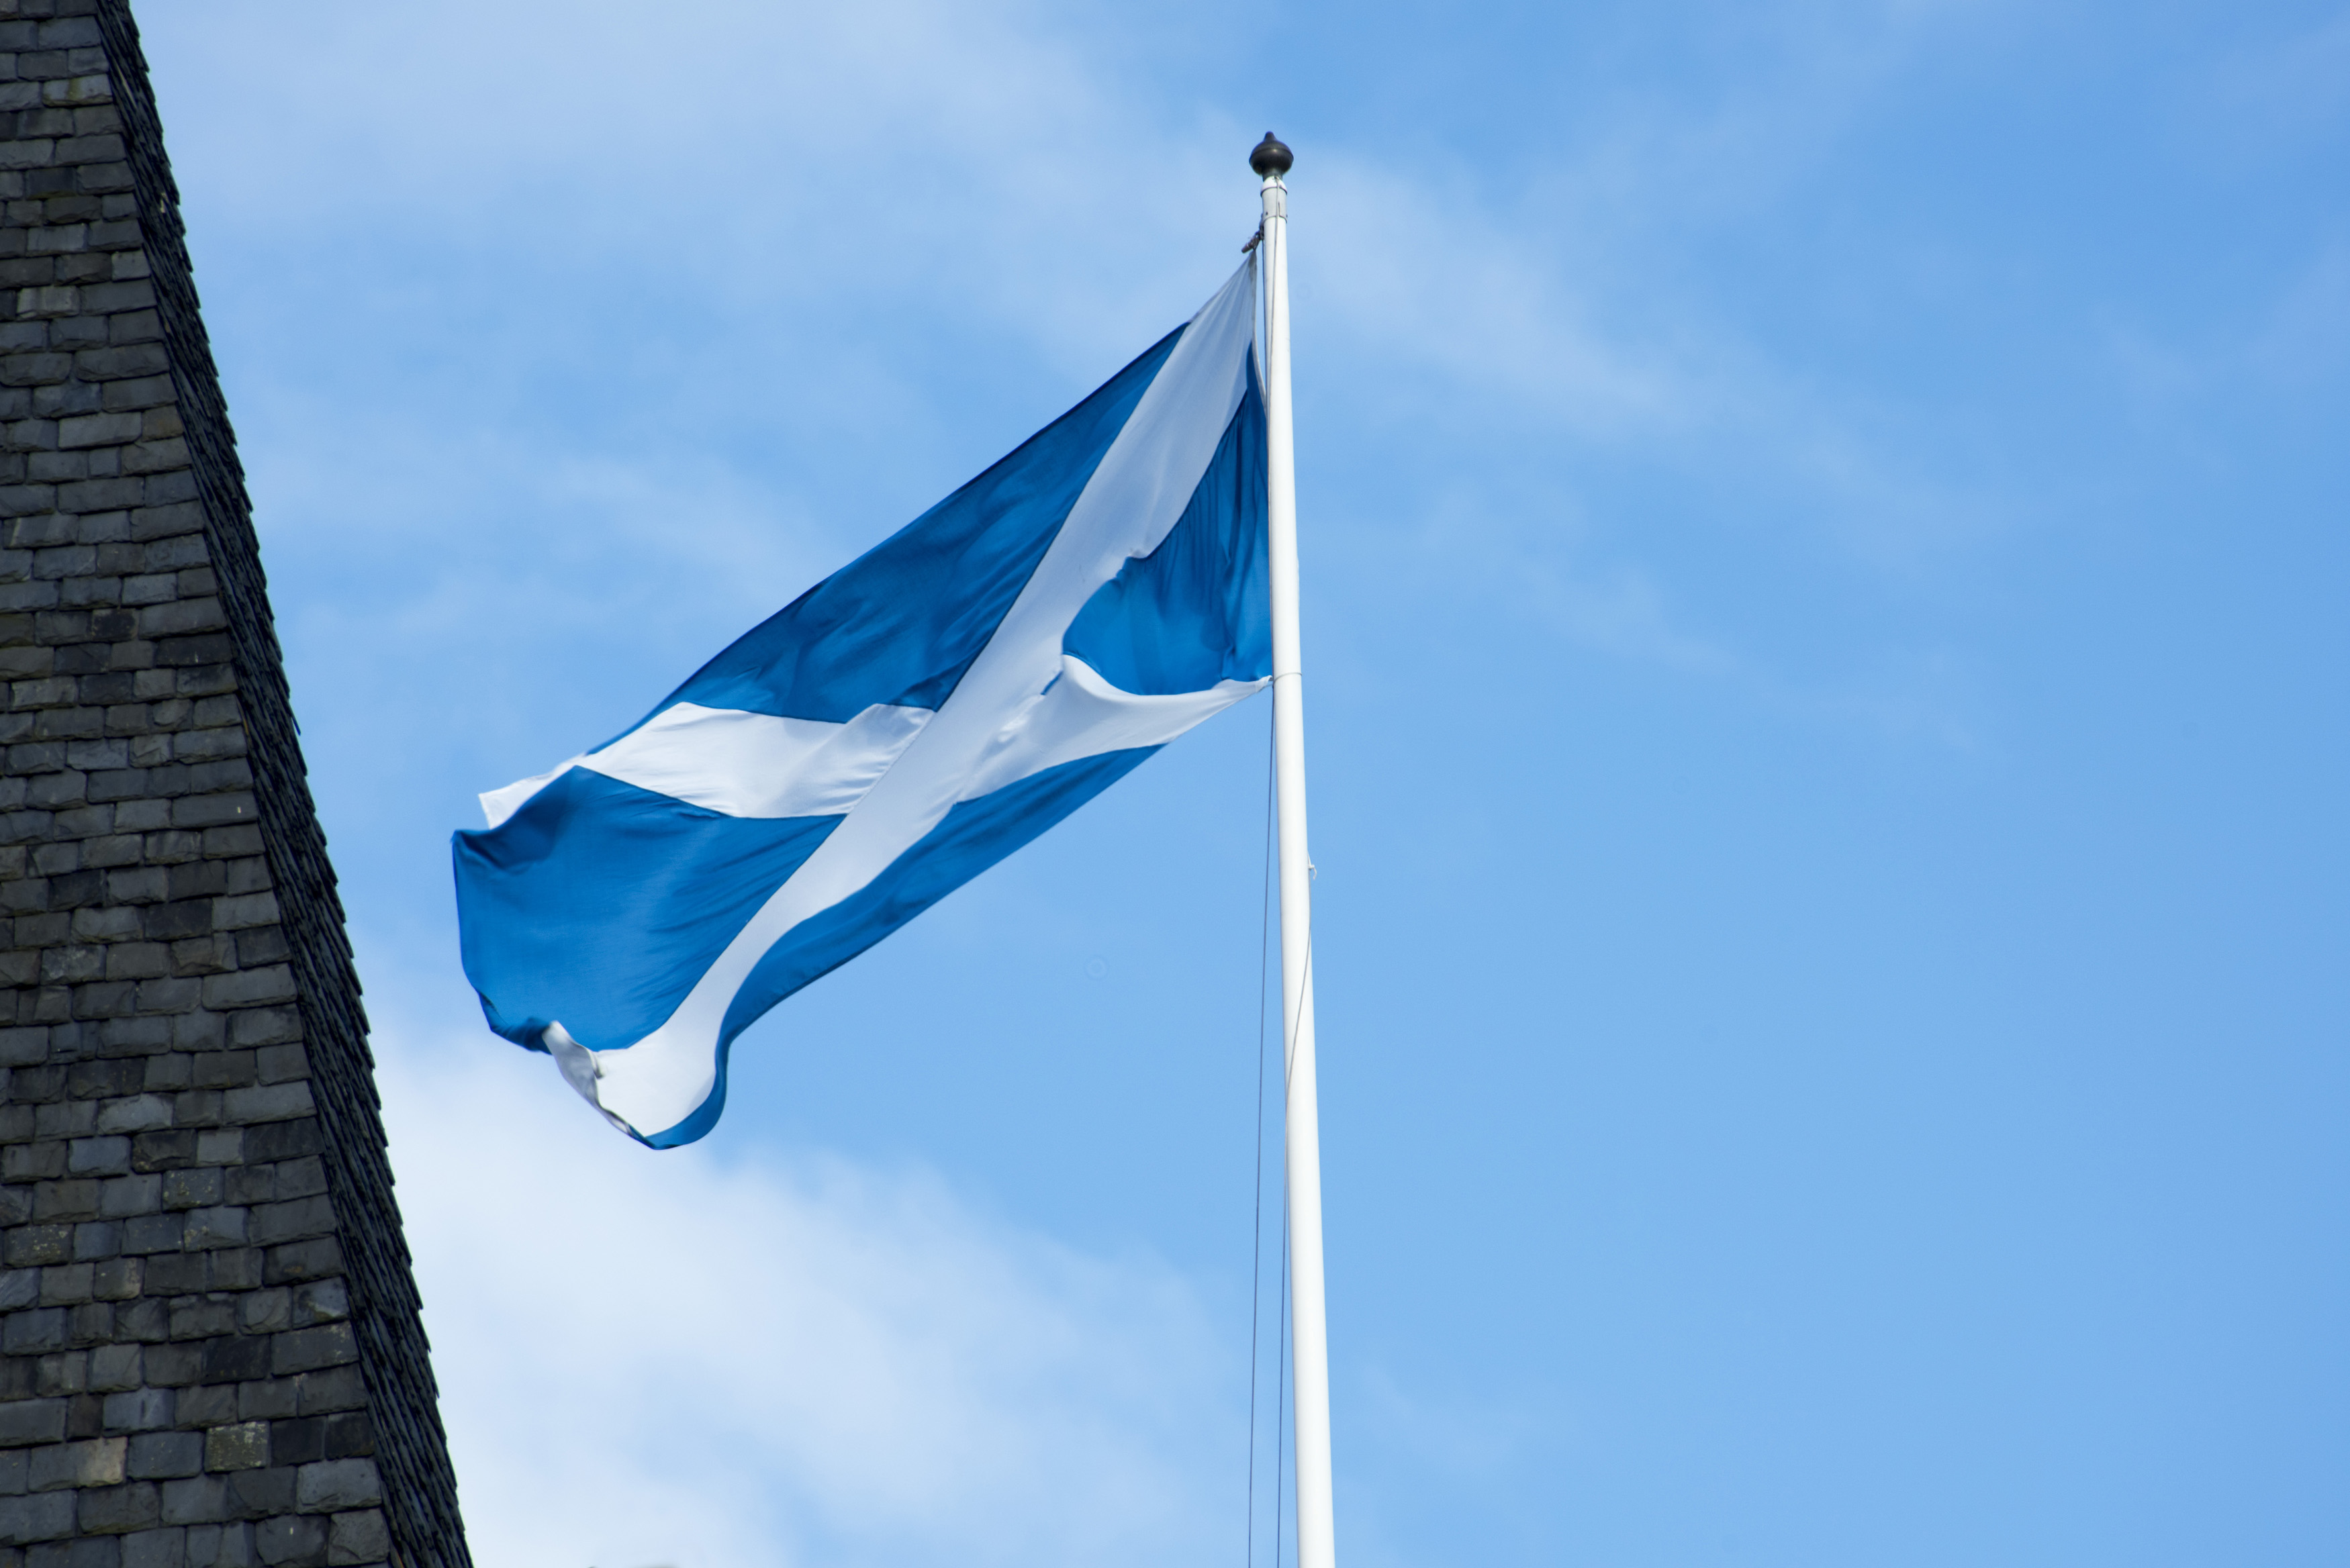 Scottish flag flying in St Andrews, Scotland fluttering in the wind on a white flagpole against a hazy blue sky